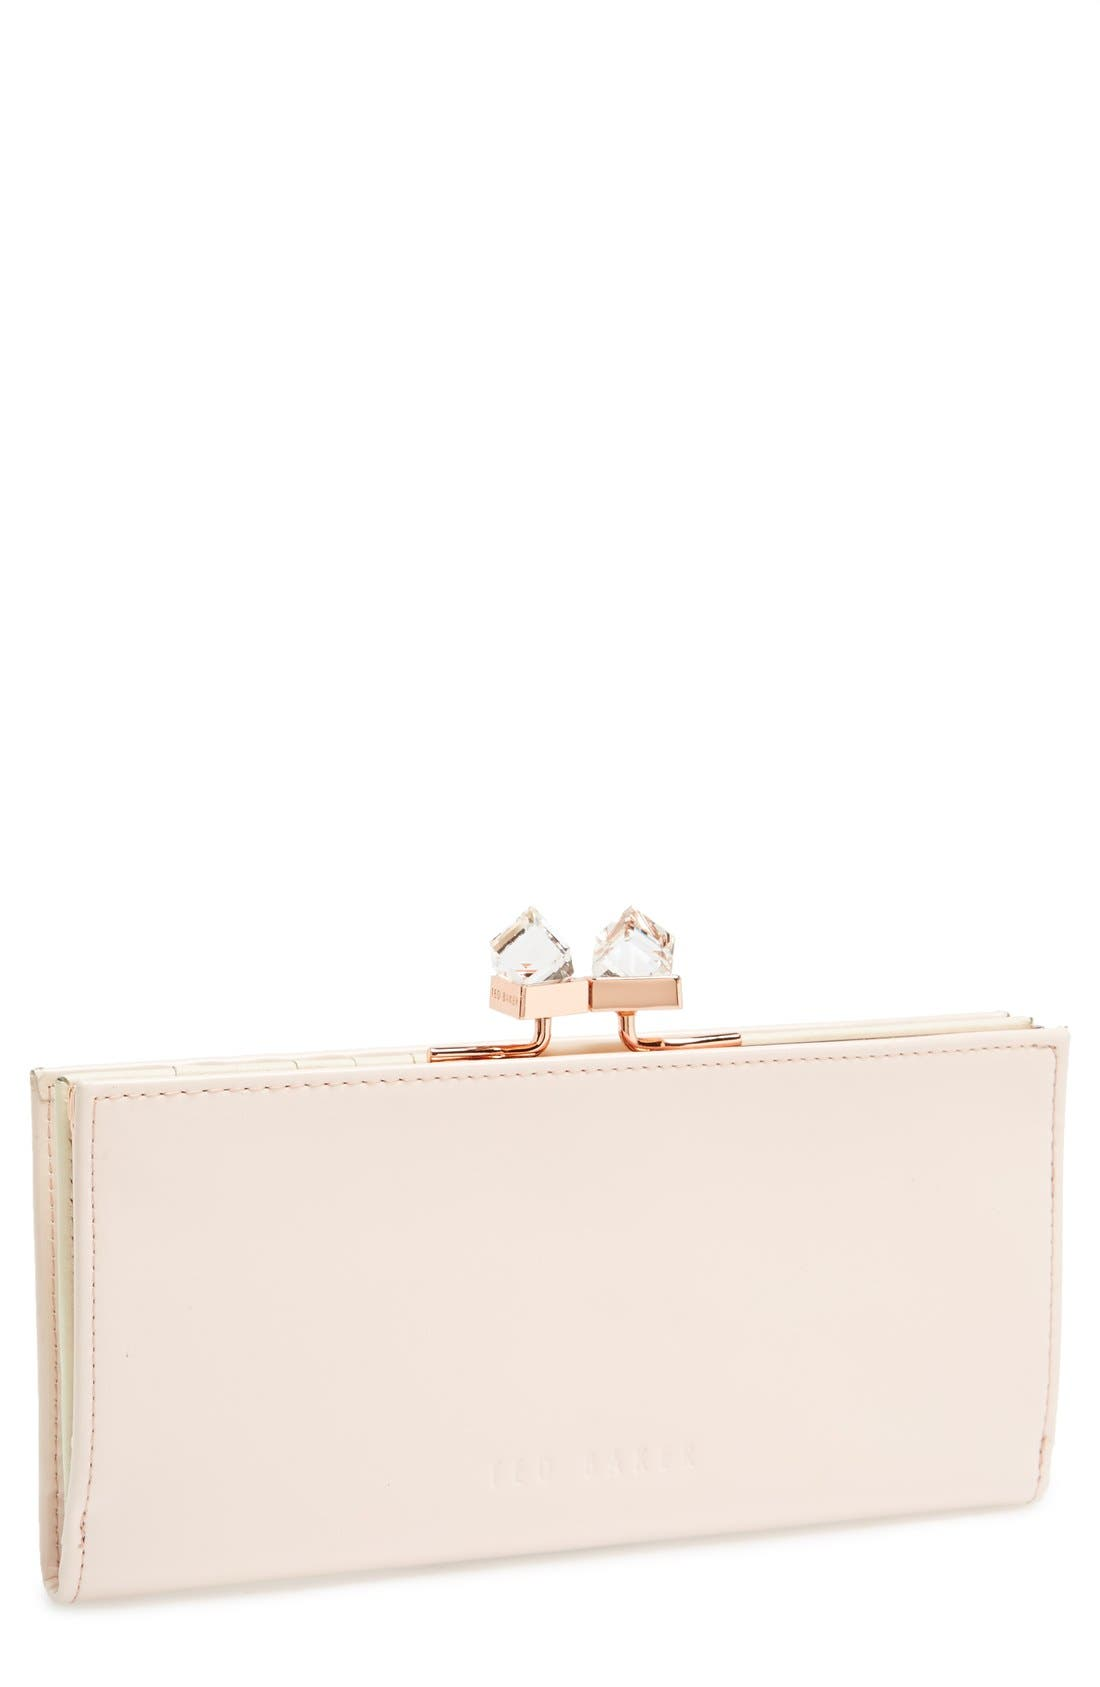 Alternate Image 1 Selected - Ted Baker London 'Crystal Popper' Patent Leather Matinee Wallet